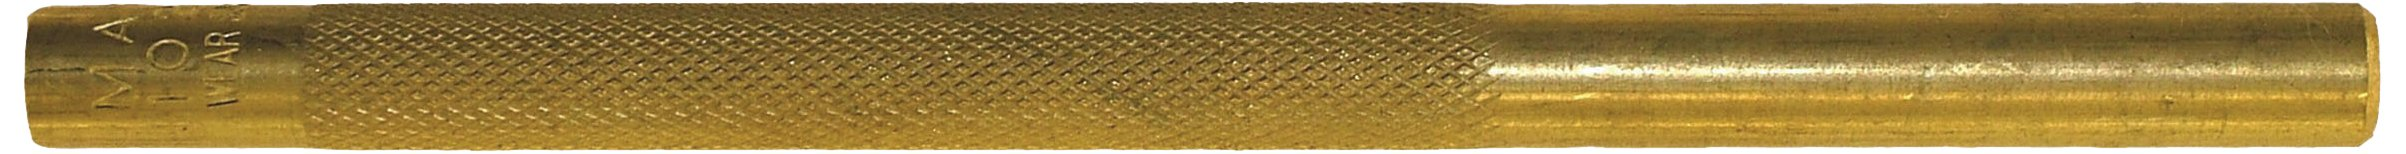 Wright Tool 9M25077 3/8-Inch Knurled Brass Drift Punch, 6-Inch